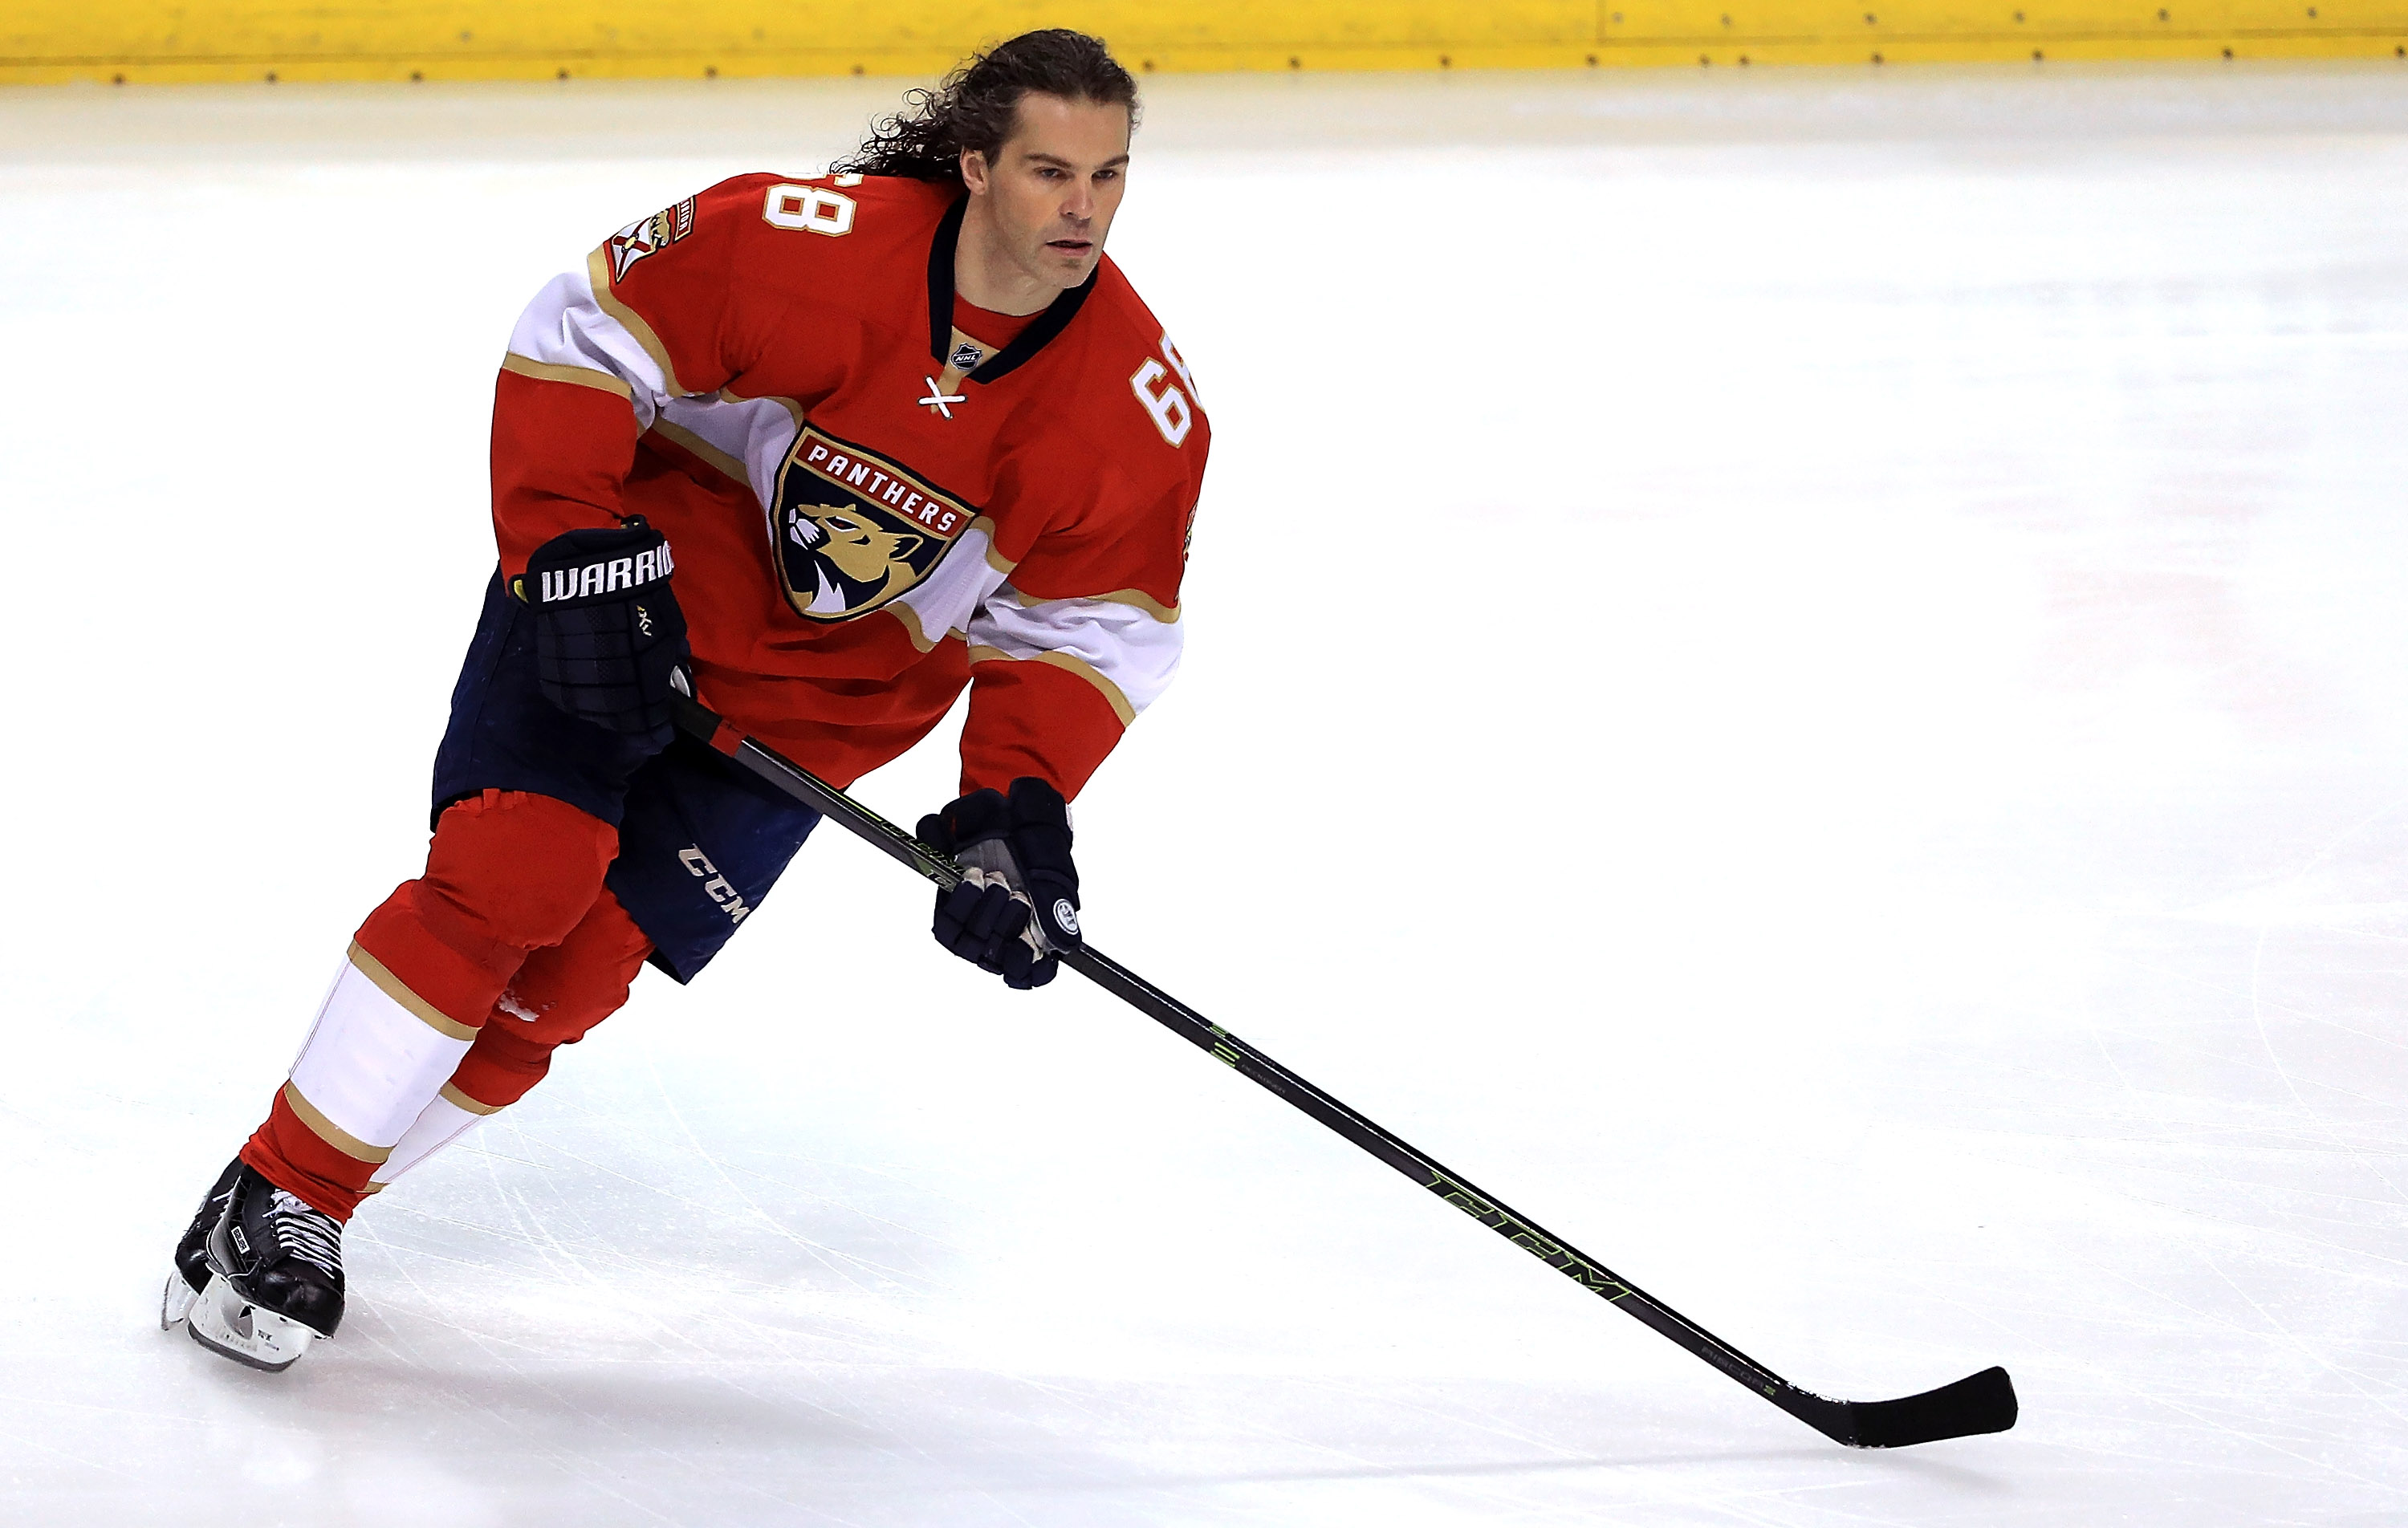 Florida's Jaromir Jagr continues to put up points against the Sabres. (Getty Images)